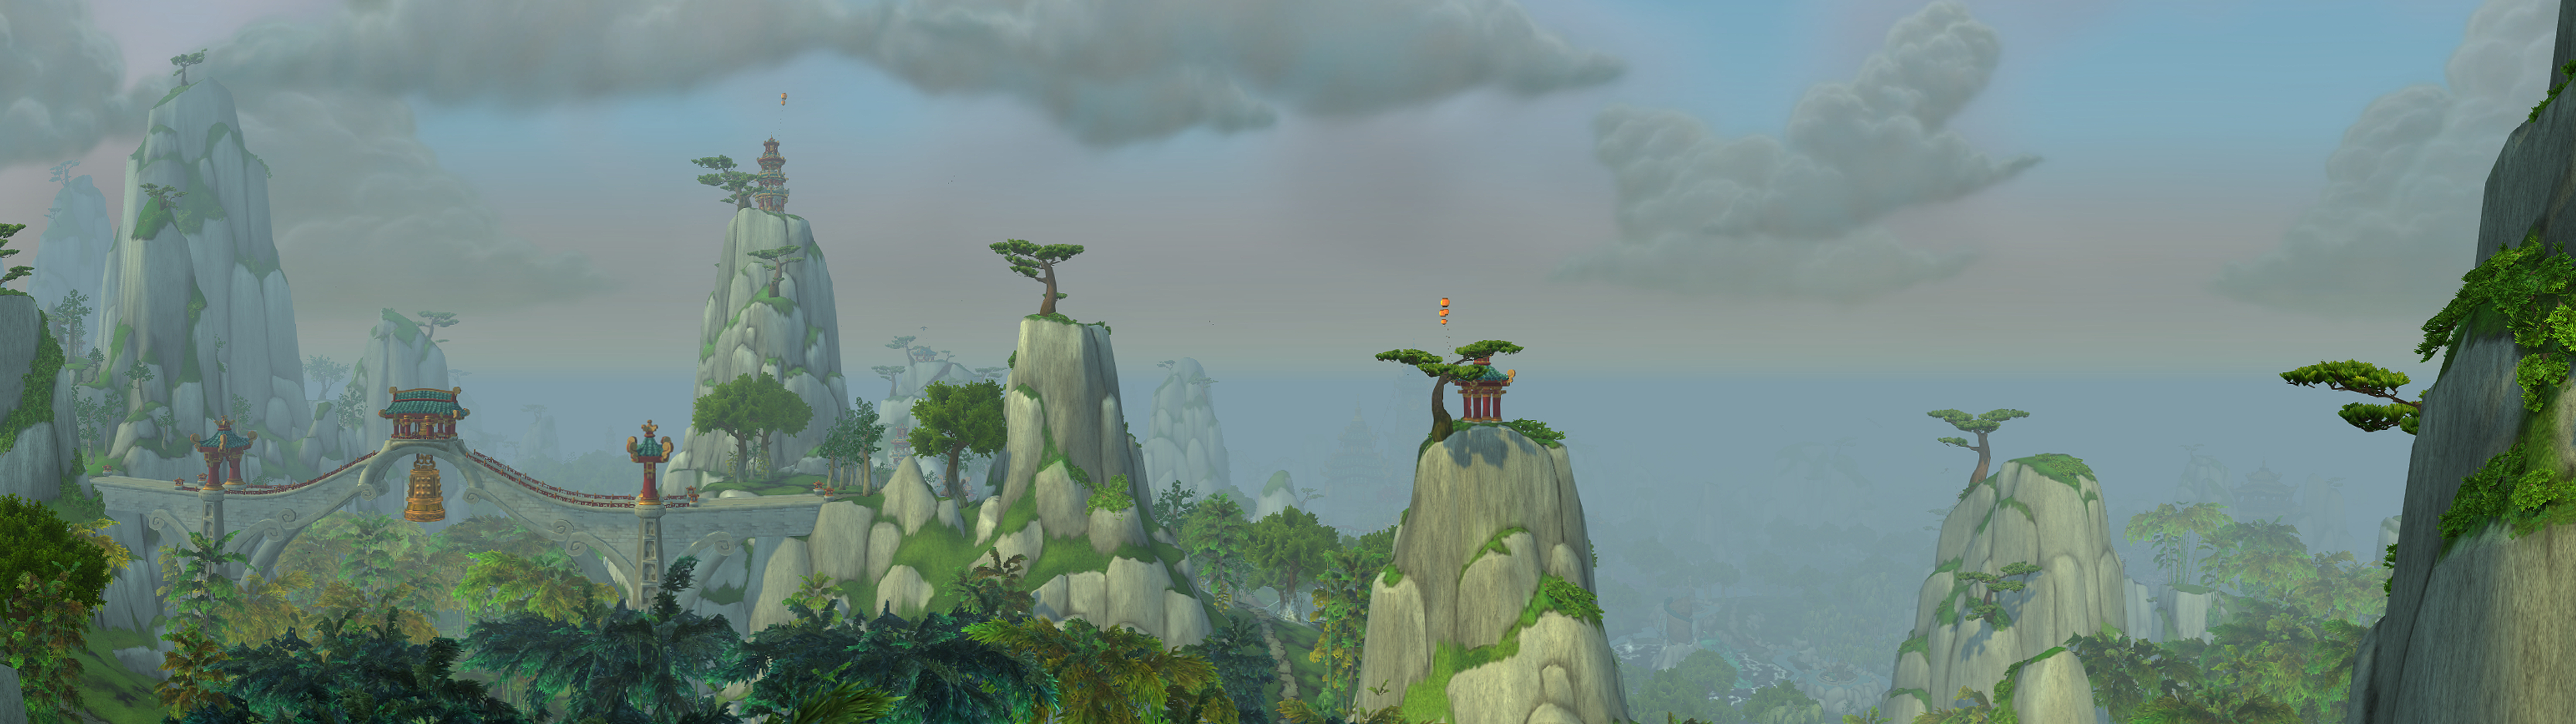 The Jade Forest Widescreen Dual Screen 3840x1080 By Countcardboard